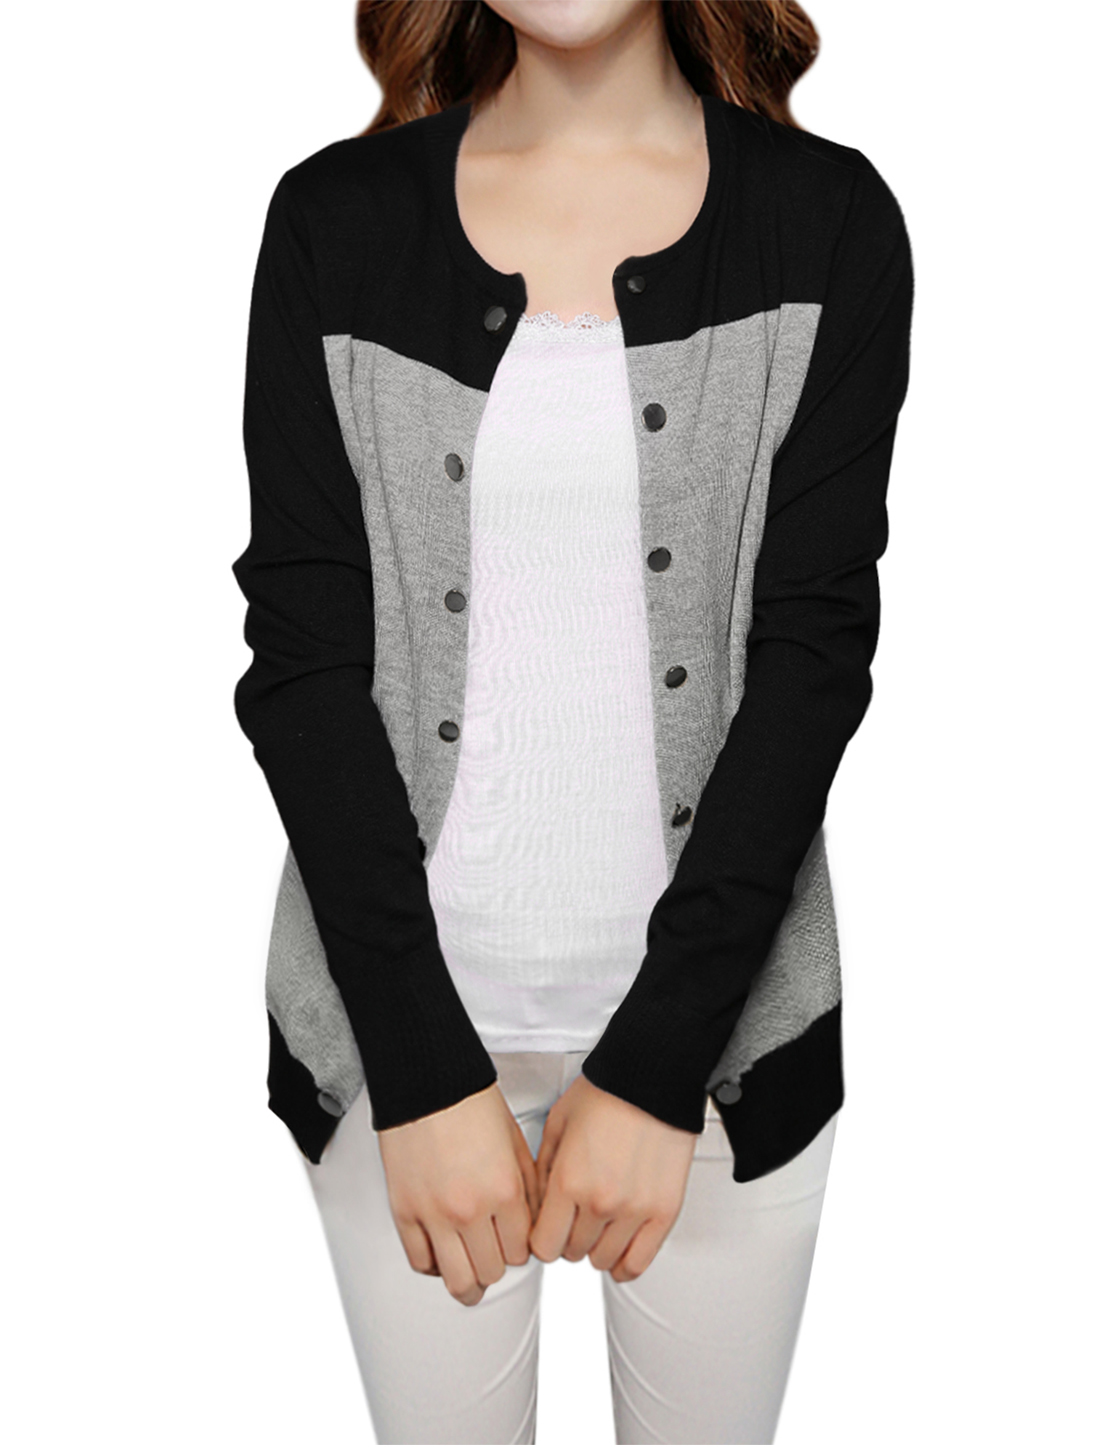 Women Round Neck Slim Fit Color Block Knit Cardigan Black Light Gray XS